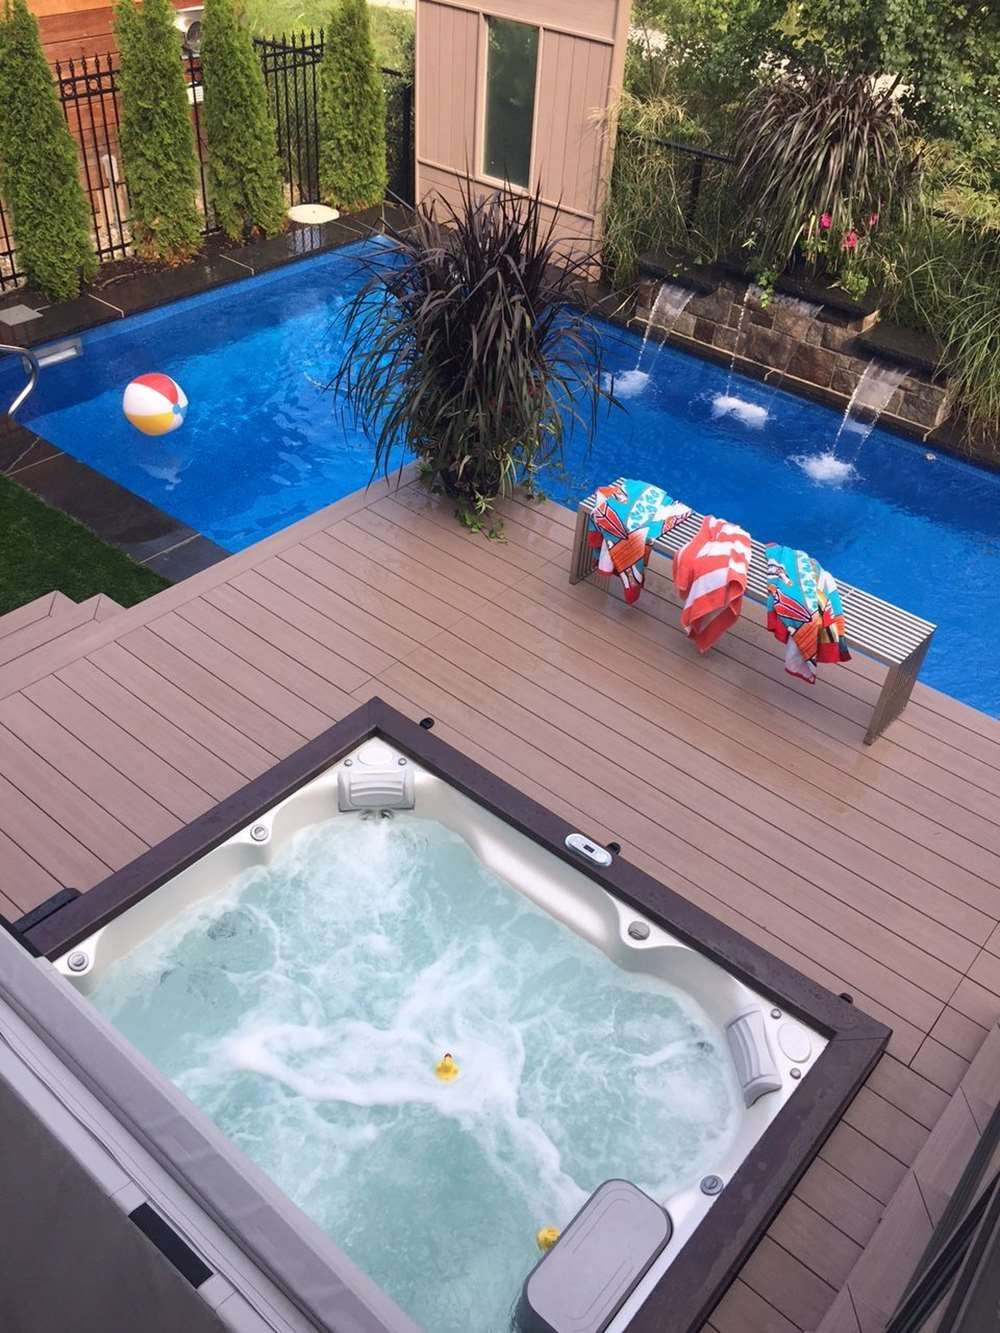 square hot tub with a pool hot tub jacuzzi spa. Black Bedroom Furniture Sets. Home Design Ideas